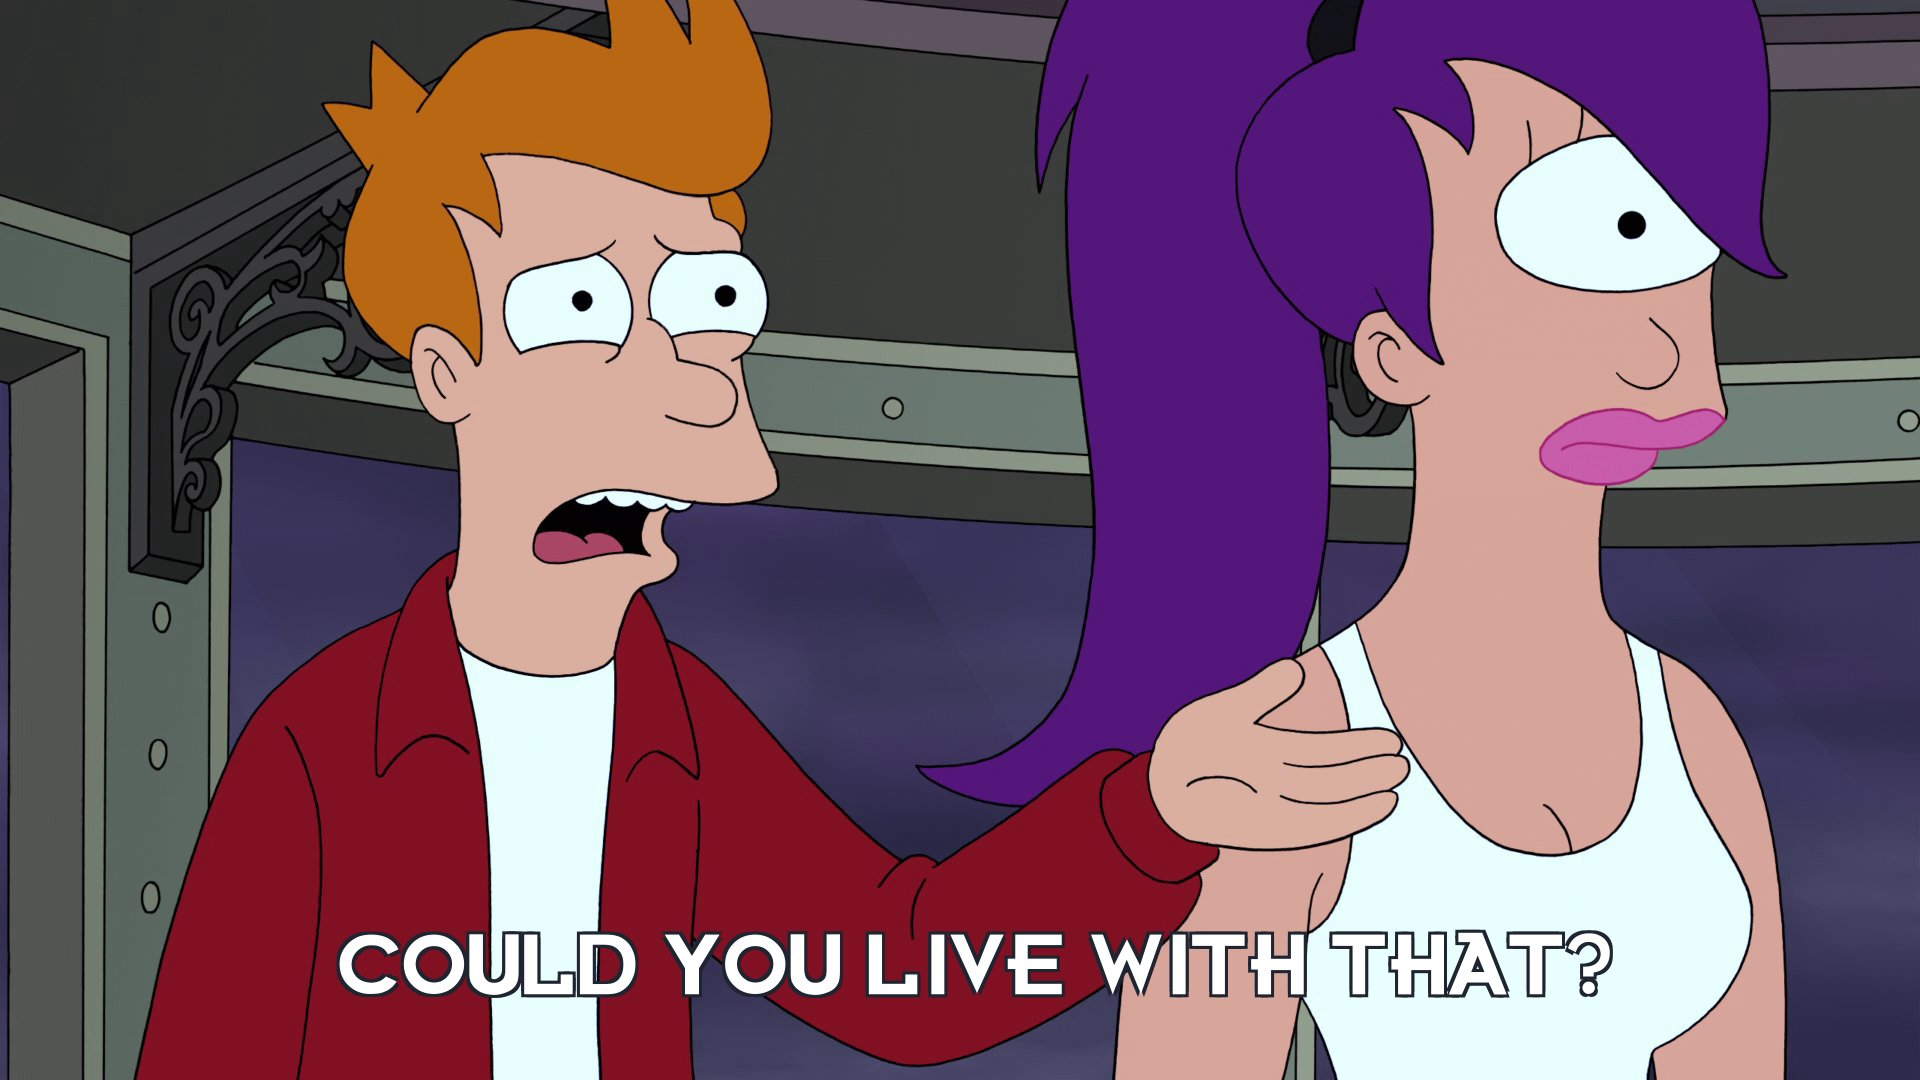 Philip J Fry: Could you live with that?